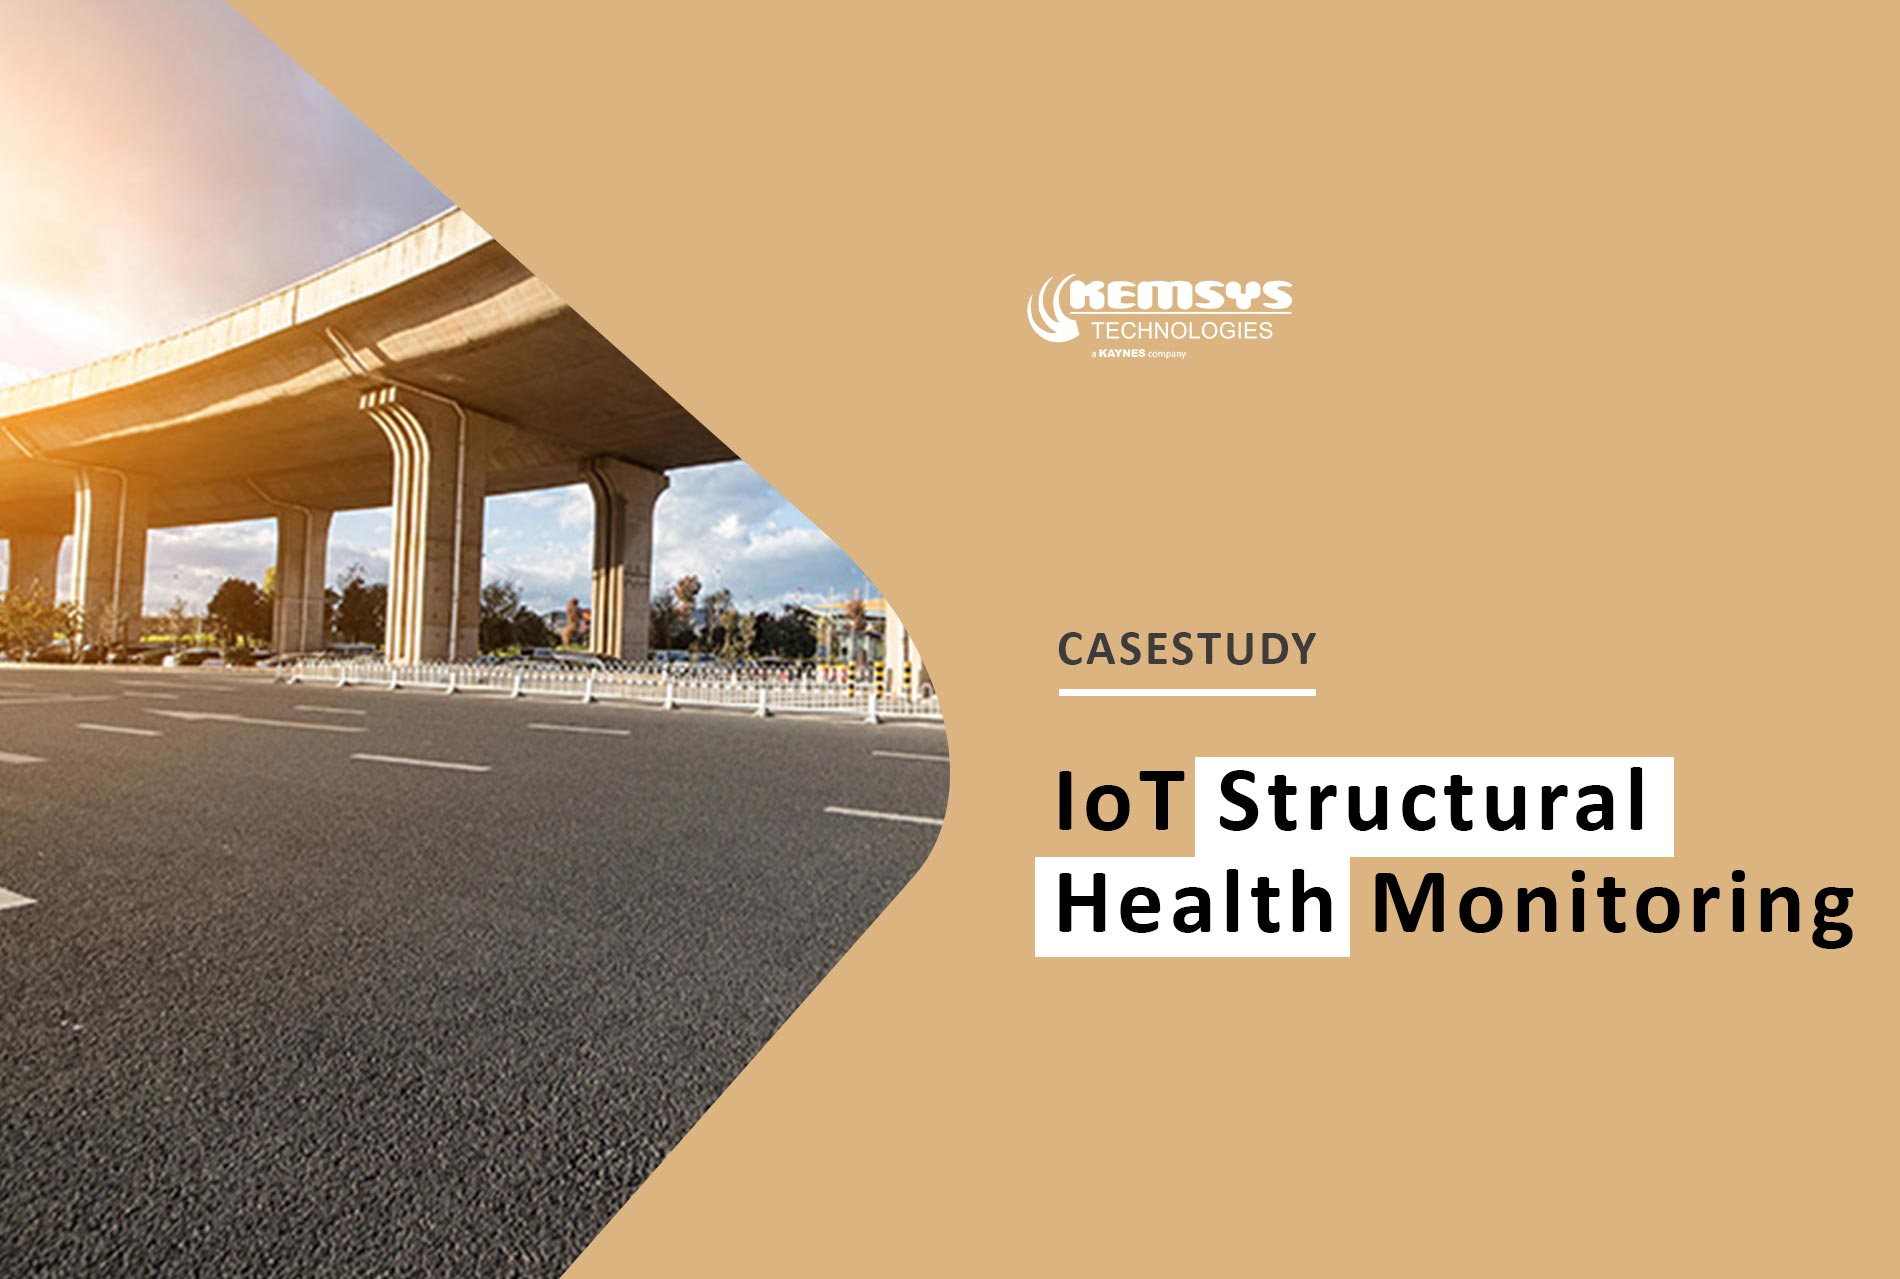 IoT-Structural-Health-Monitoring-Solution-Kemsys_